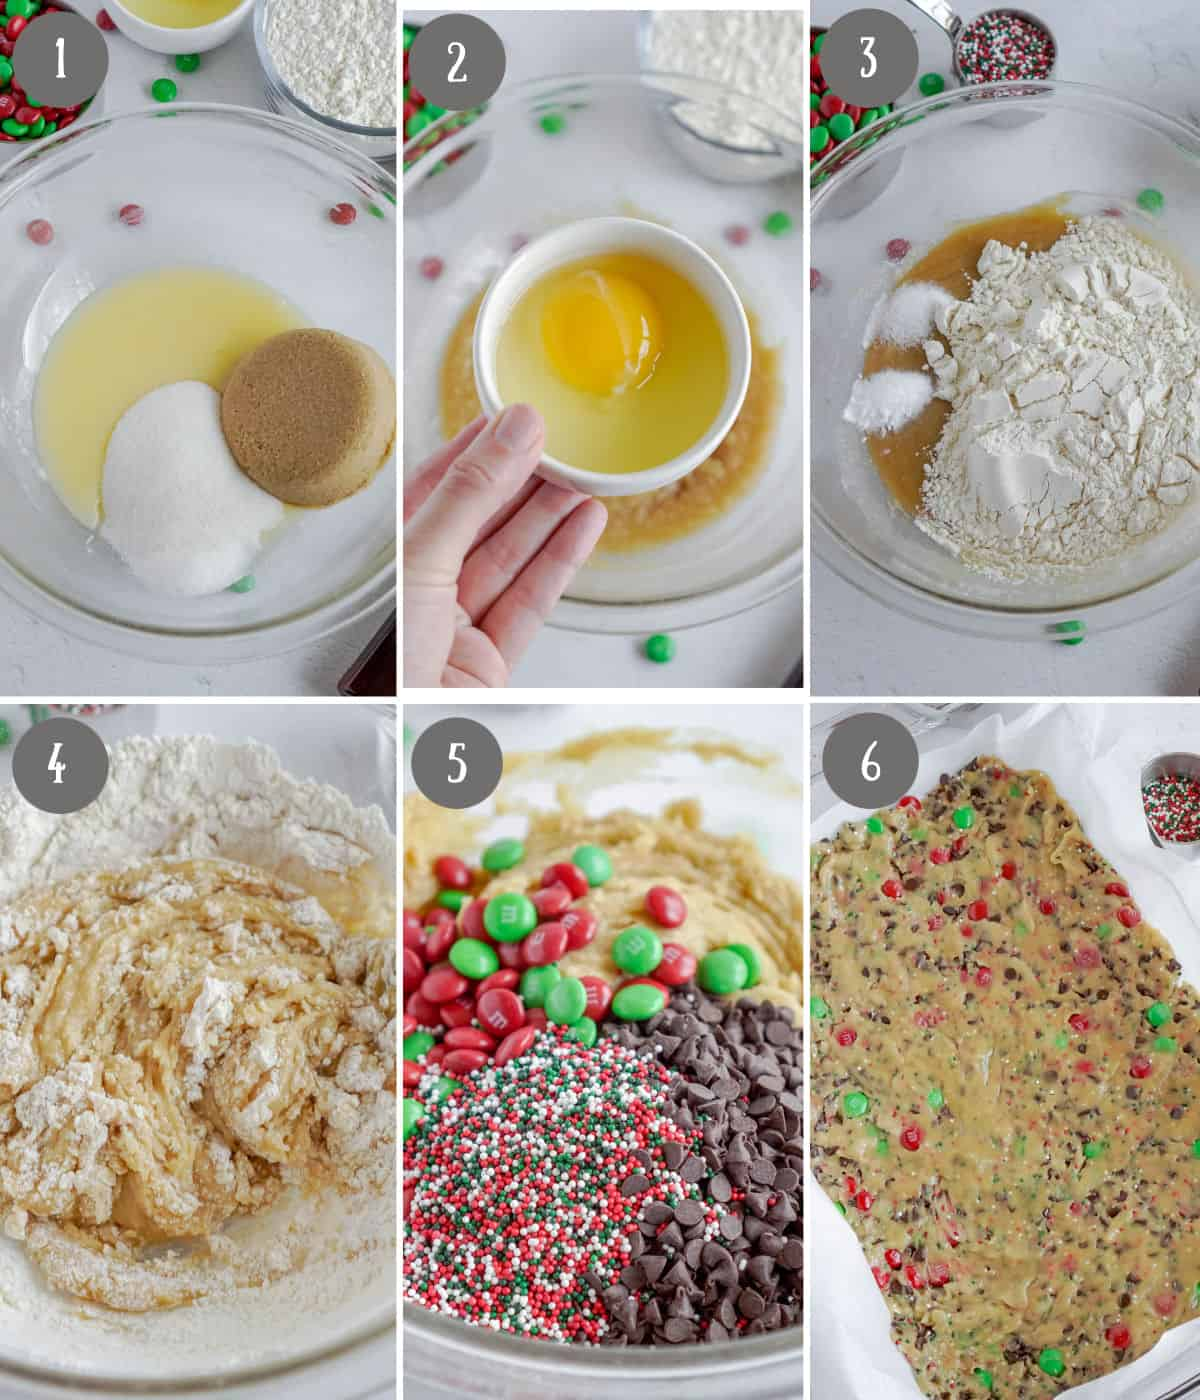 Six process photos. First one, sugars and butter in a bowl. Second one, eggs added in. Third one, dry ingredients added in. Fourth one, batter all mixed together. Fifth one, chocolate being added in. Sixth one, cookie dough pressed in a baking sheet.